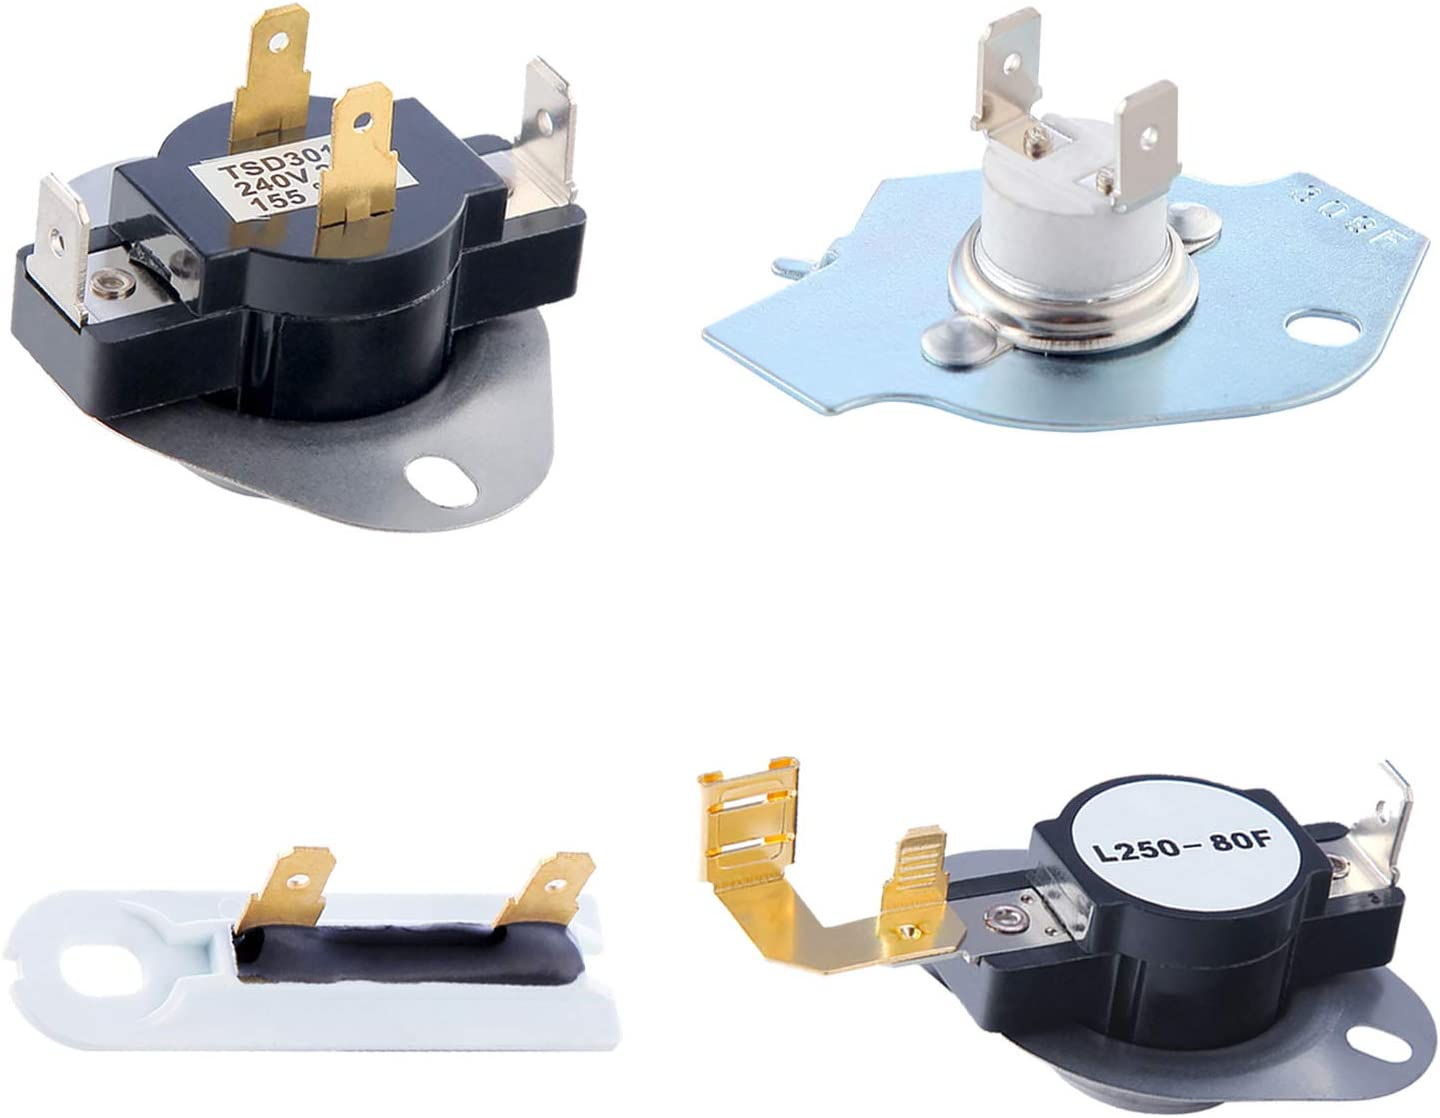 3387134 Cycling Thermostat 3977767 Dryer Thermostat 3977393 Thermal Fuse 3392519 Dryer Thermal Fuse Kit Exact Fit for Whirlpool & Kenmore Dryers, Figure 6 for More Models